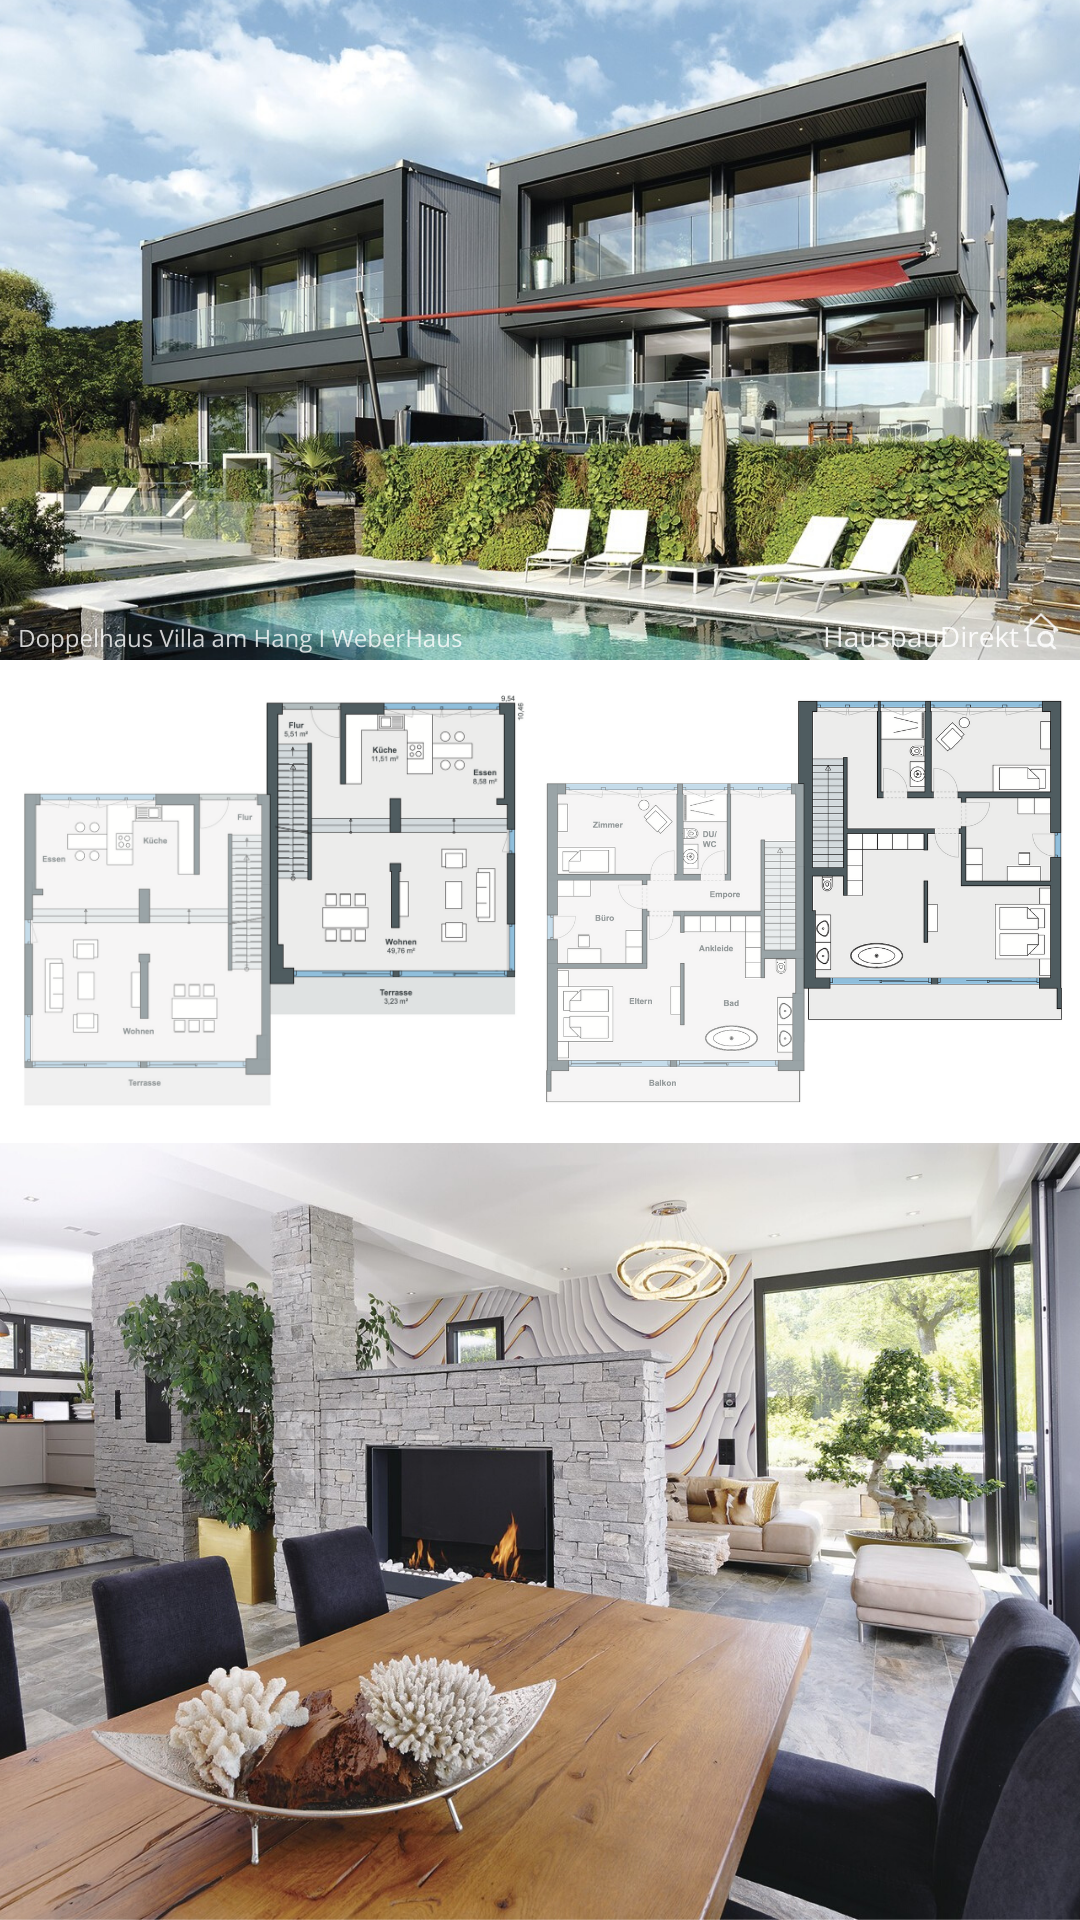 Modern Duplex House Plans Side by Side on Hillside with ...